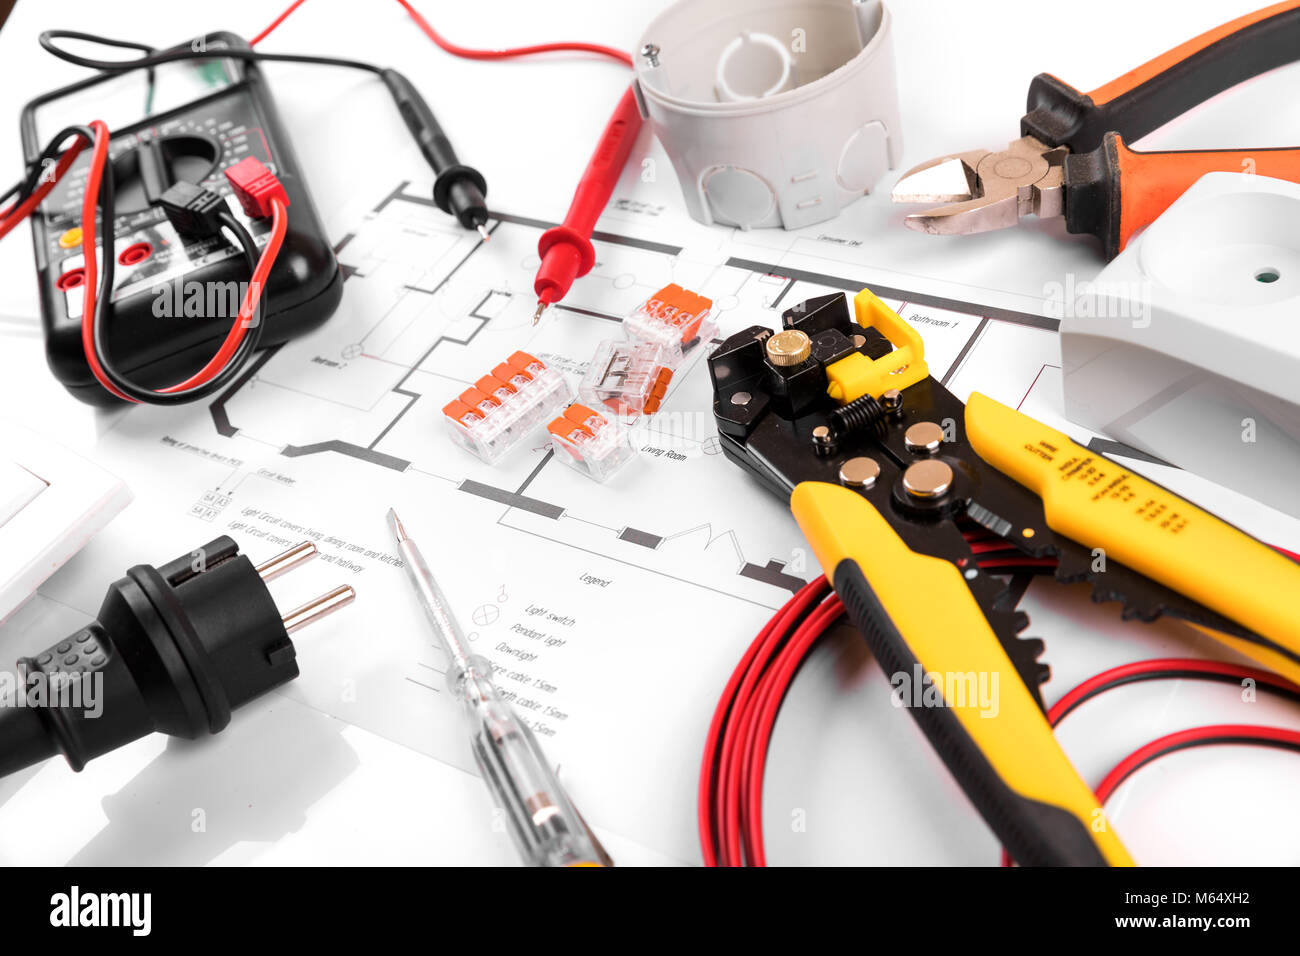 Marvelous Electrical Tools And Equipment On House Circuit Diagram Stock Photo Wiring 101 Capemaxxcnl